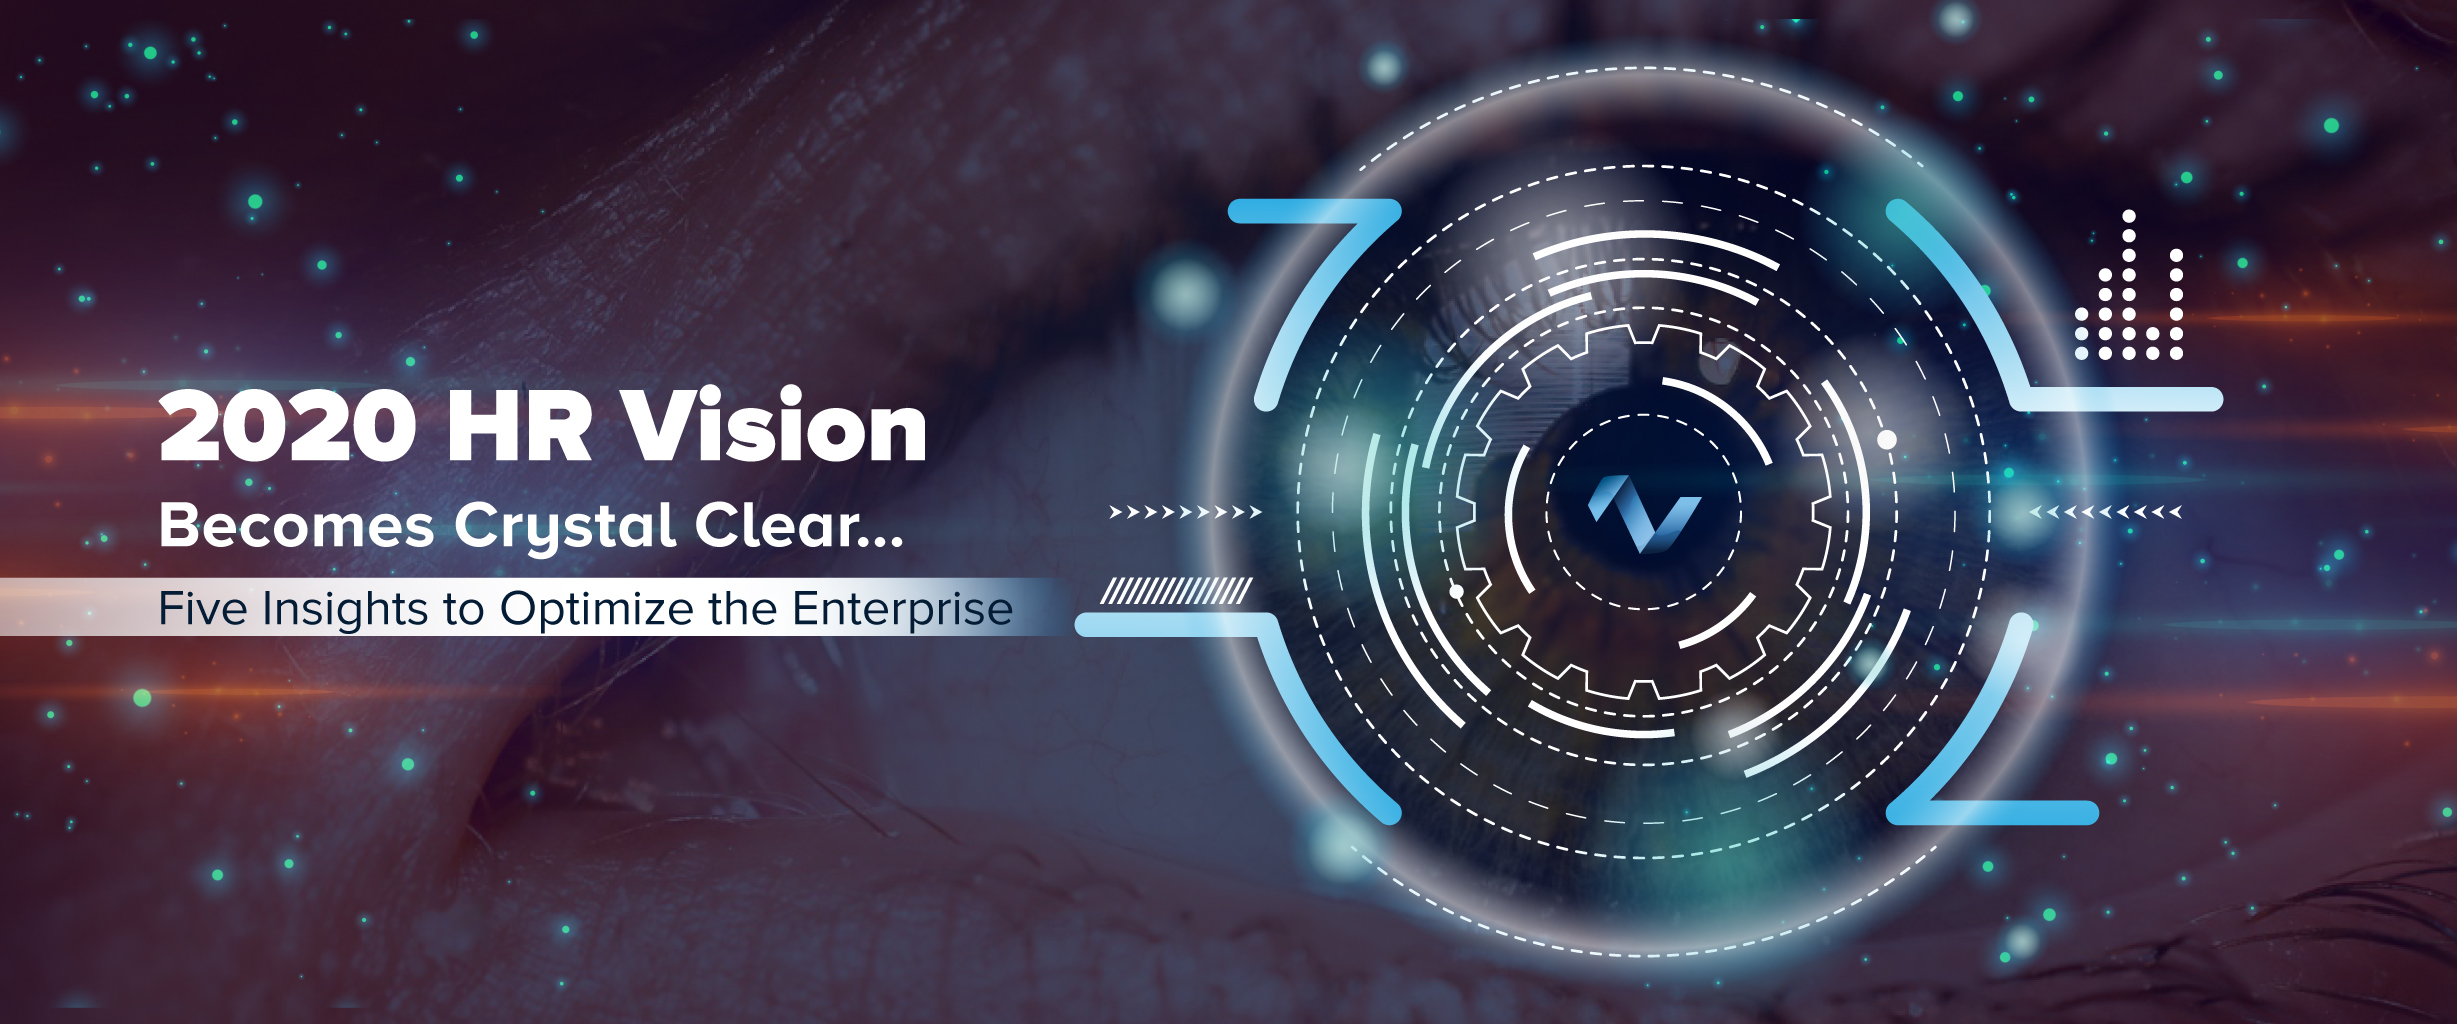 2020 HR Vision Becomes Crystal Clear… Five Insights to Optimize the Enterprise